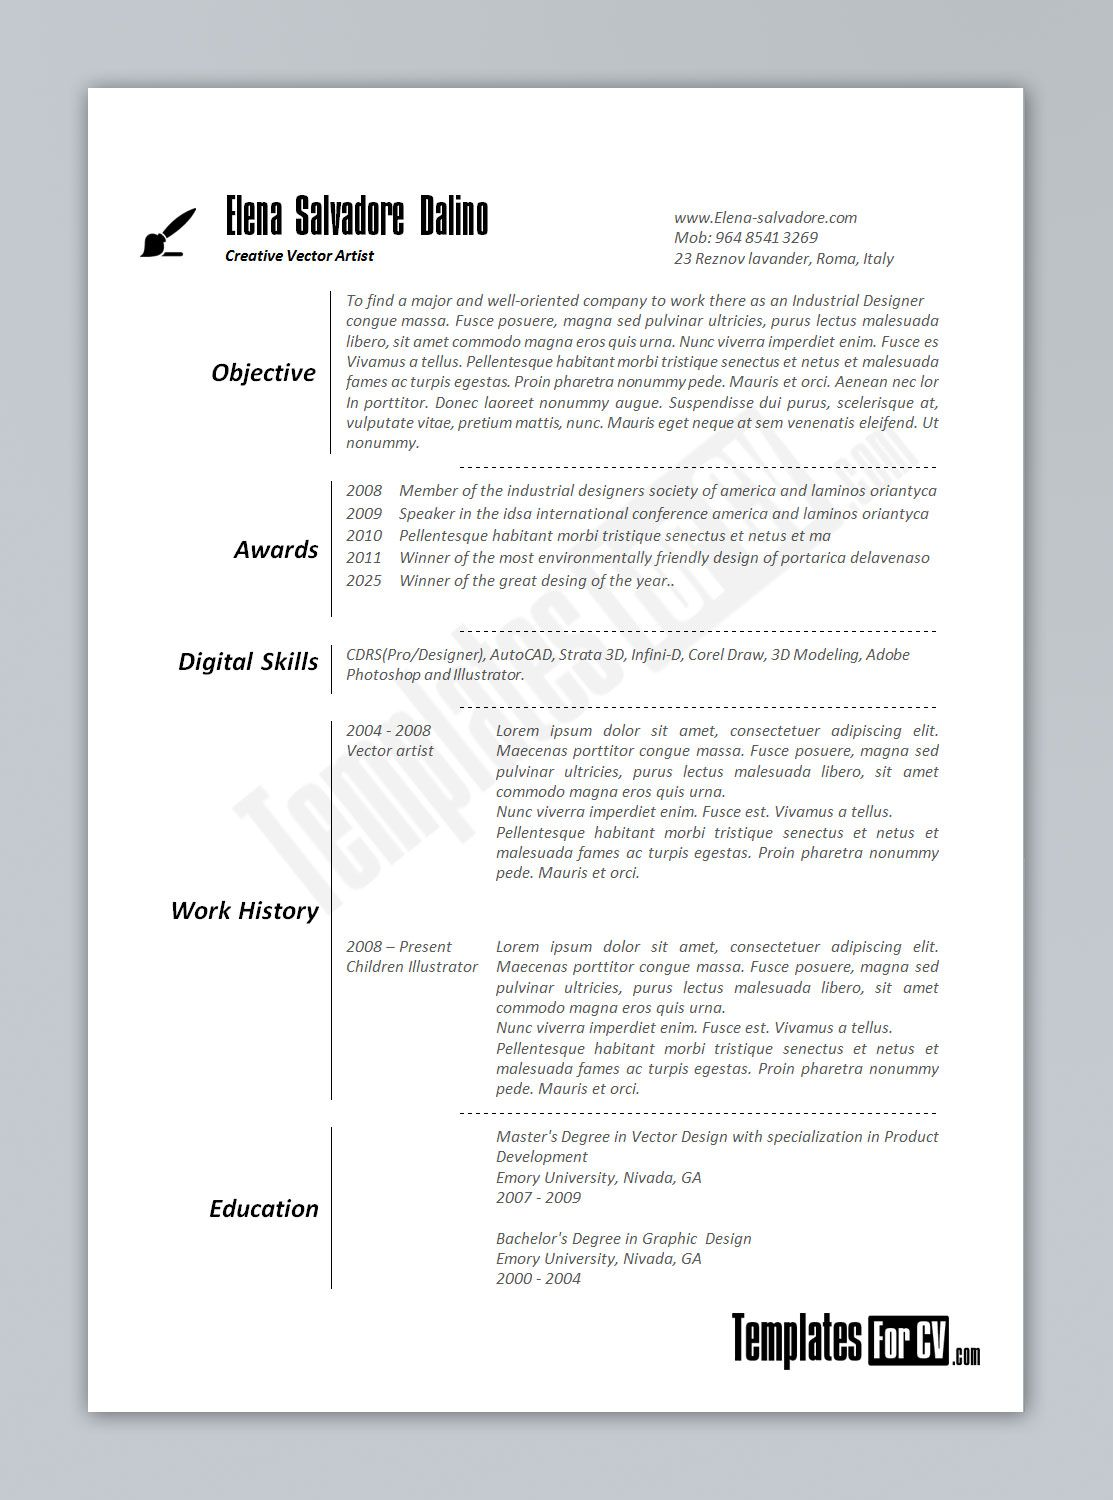 artist cv template artist cv template - Graphics Production Artist Resume